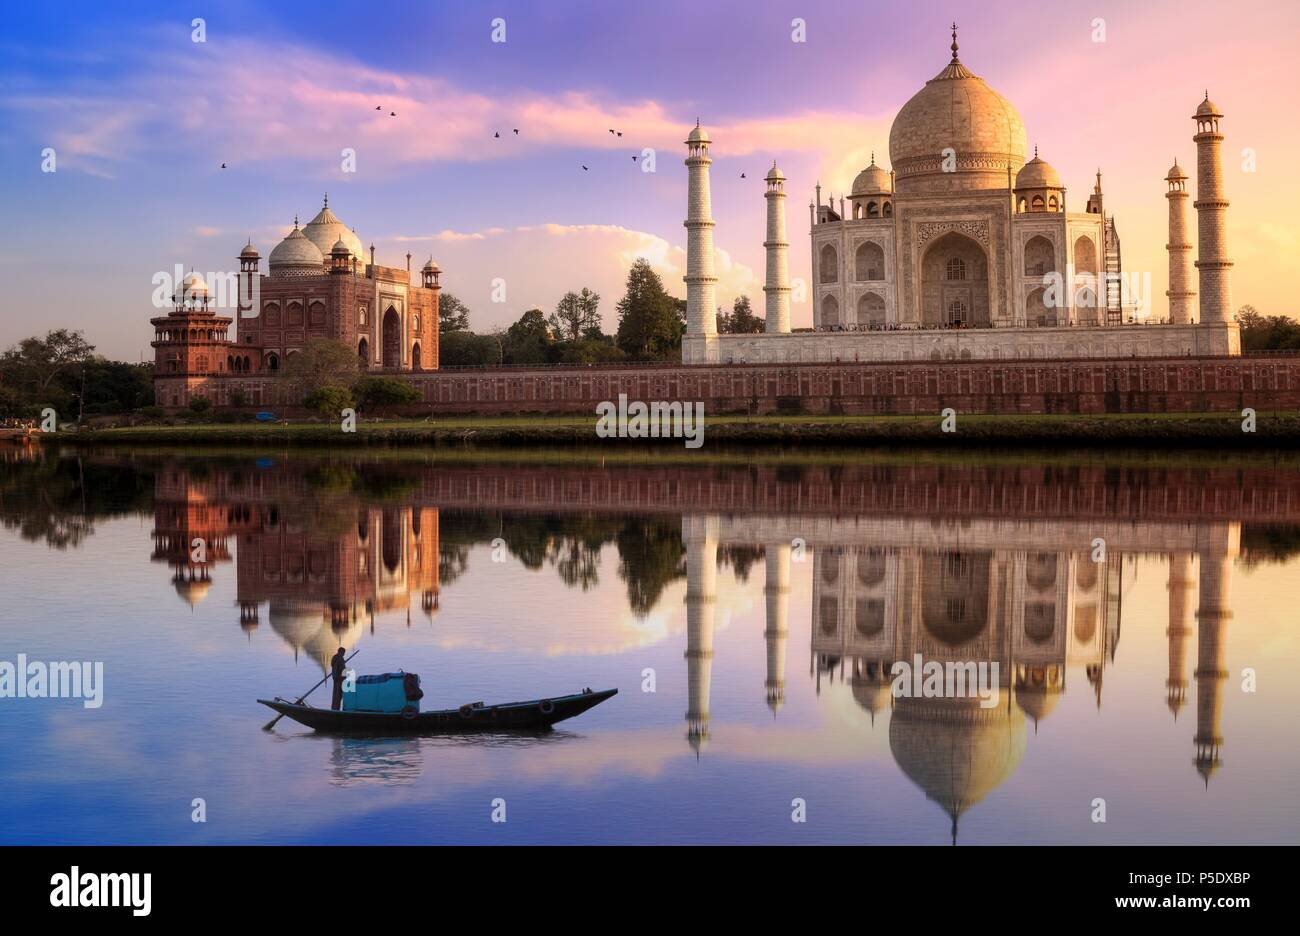 Taj Mahal Agra at sunset with moody sky with wooden boat on river Yamuna - Stock Image